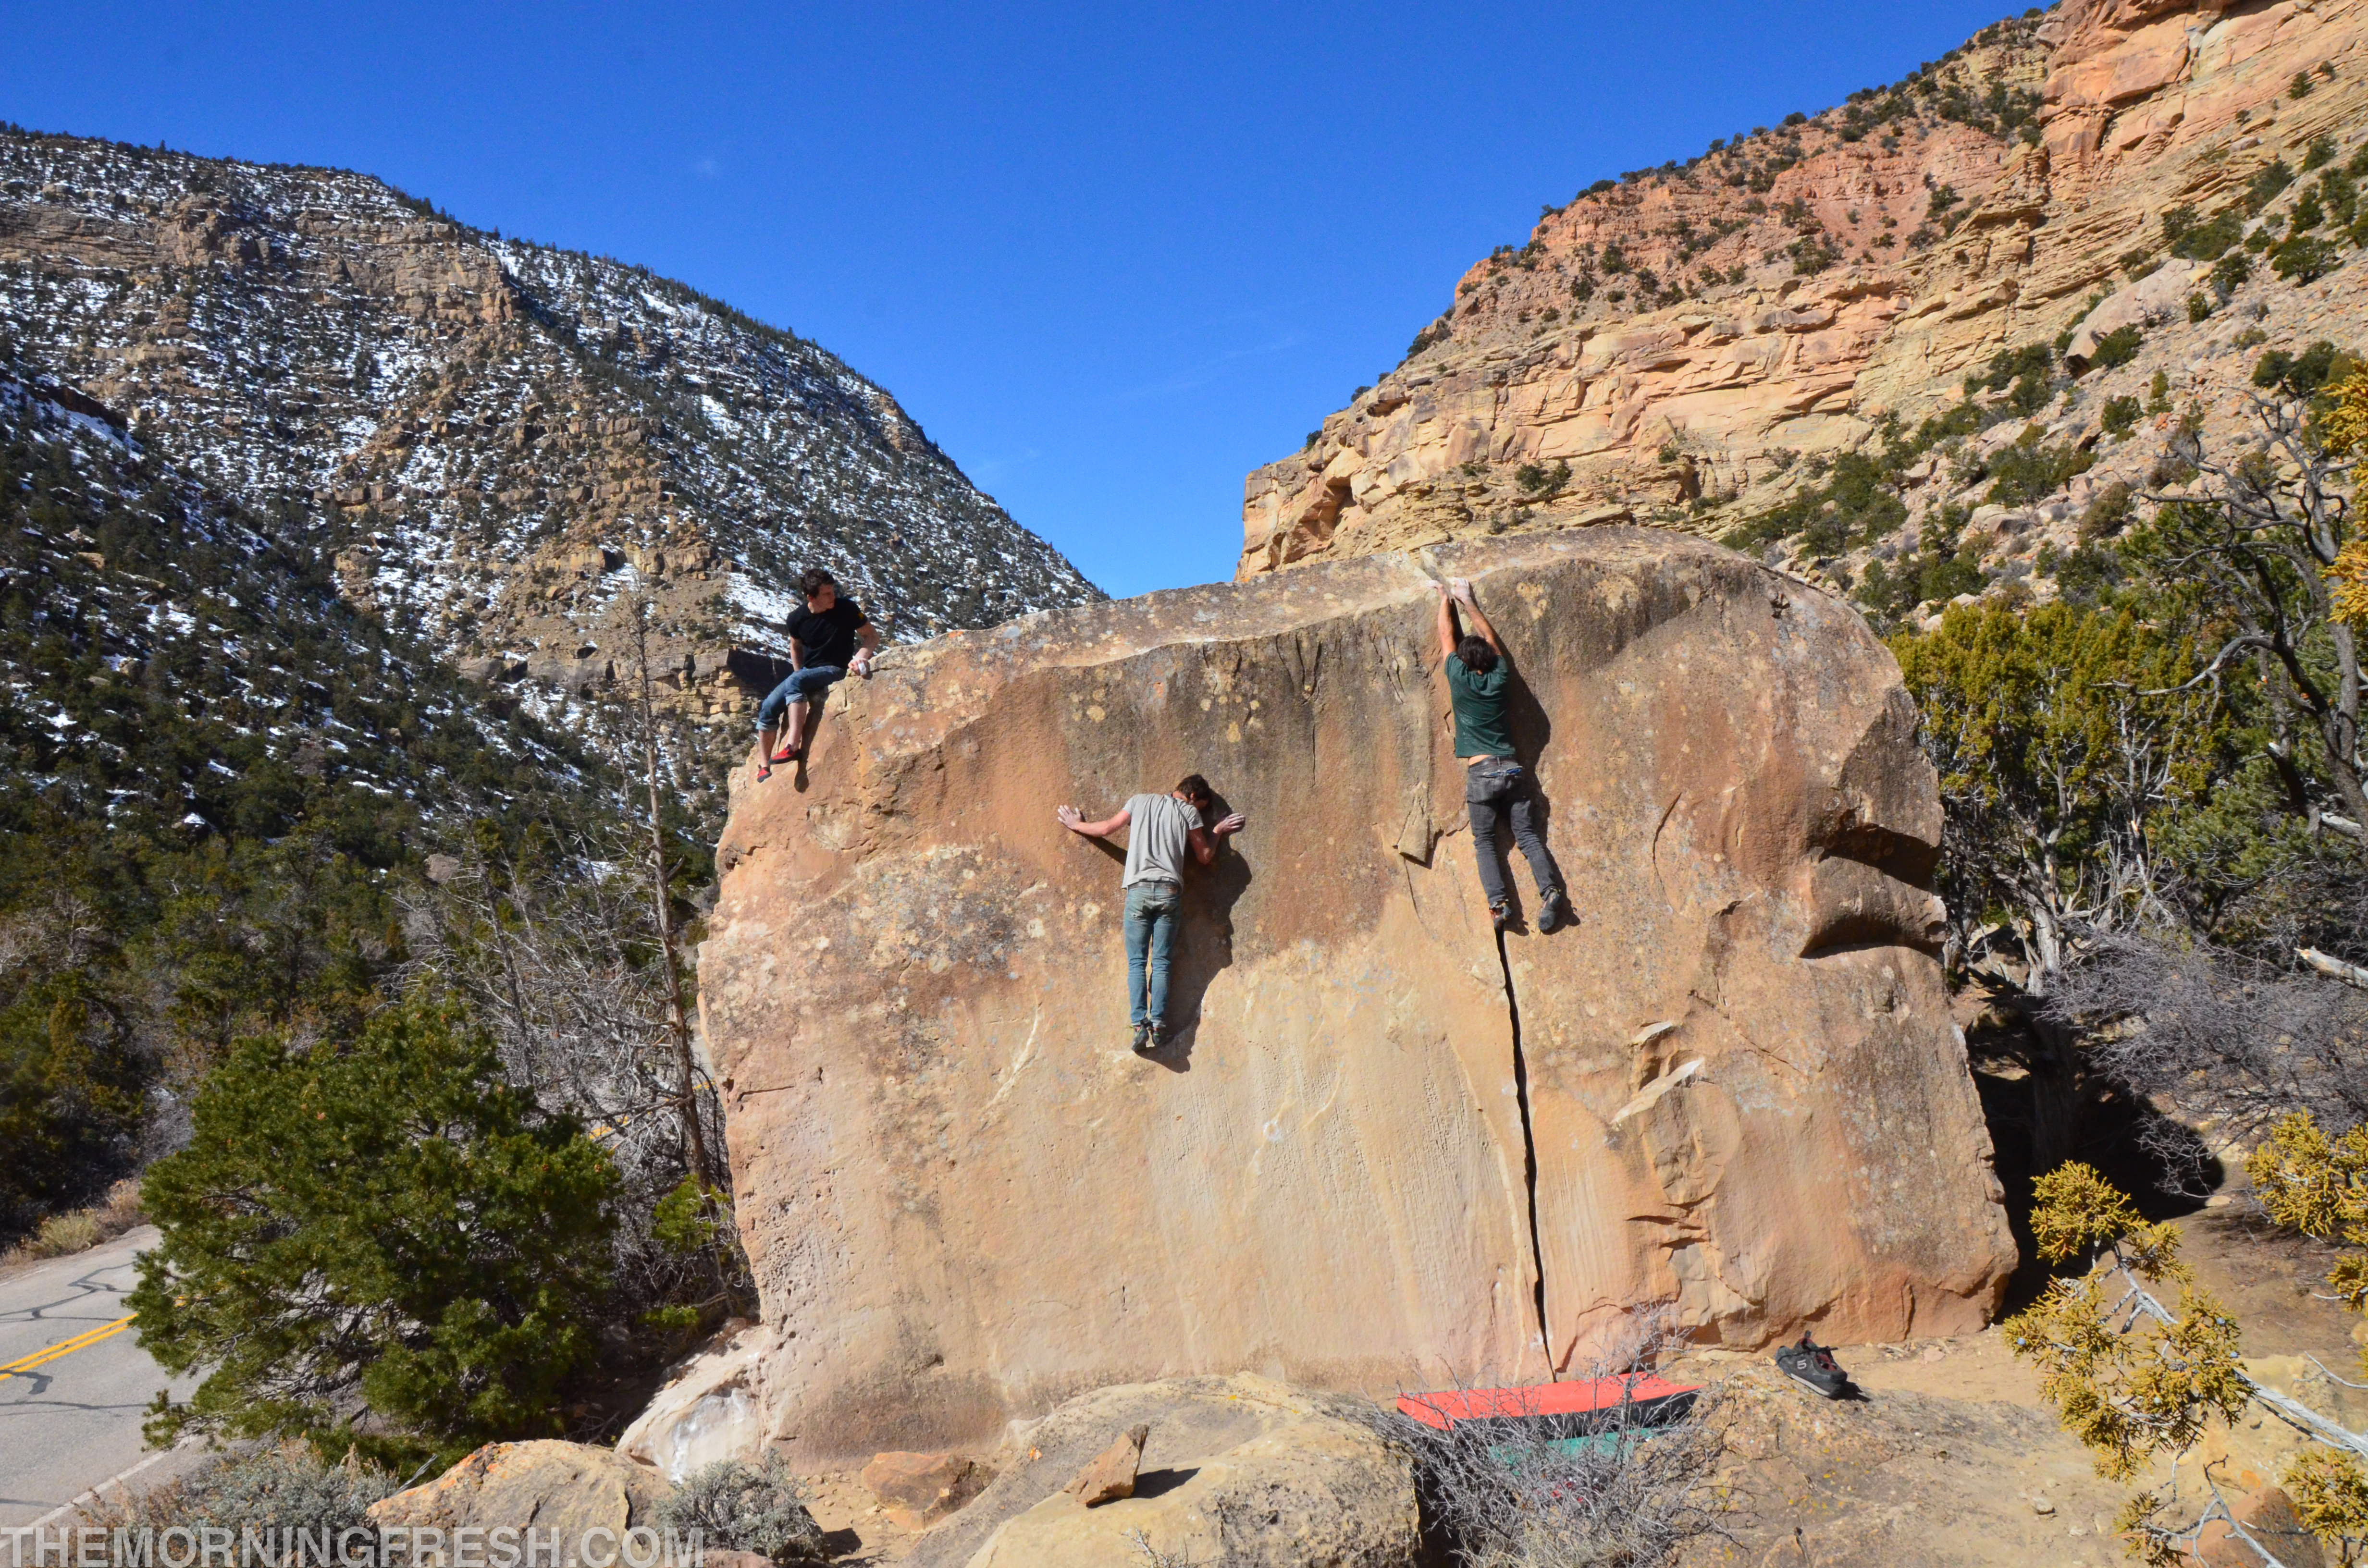 Niko, Bo, and Cox messing around on the landmark crack boulder in the Left Fork of Joe's Valley in Utah.